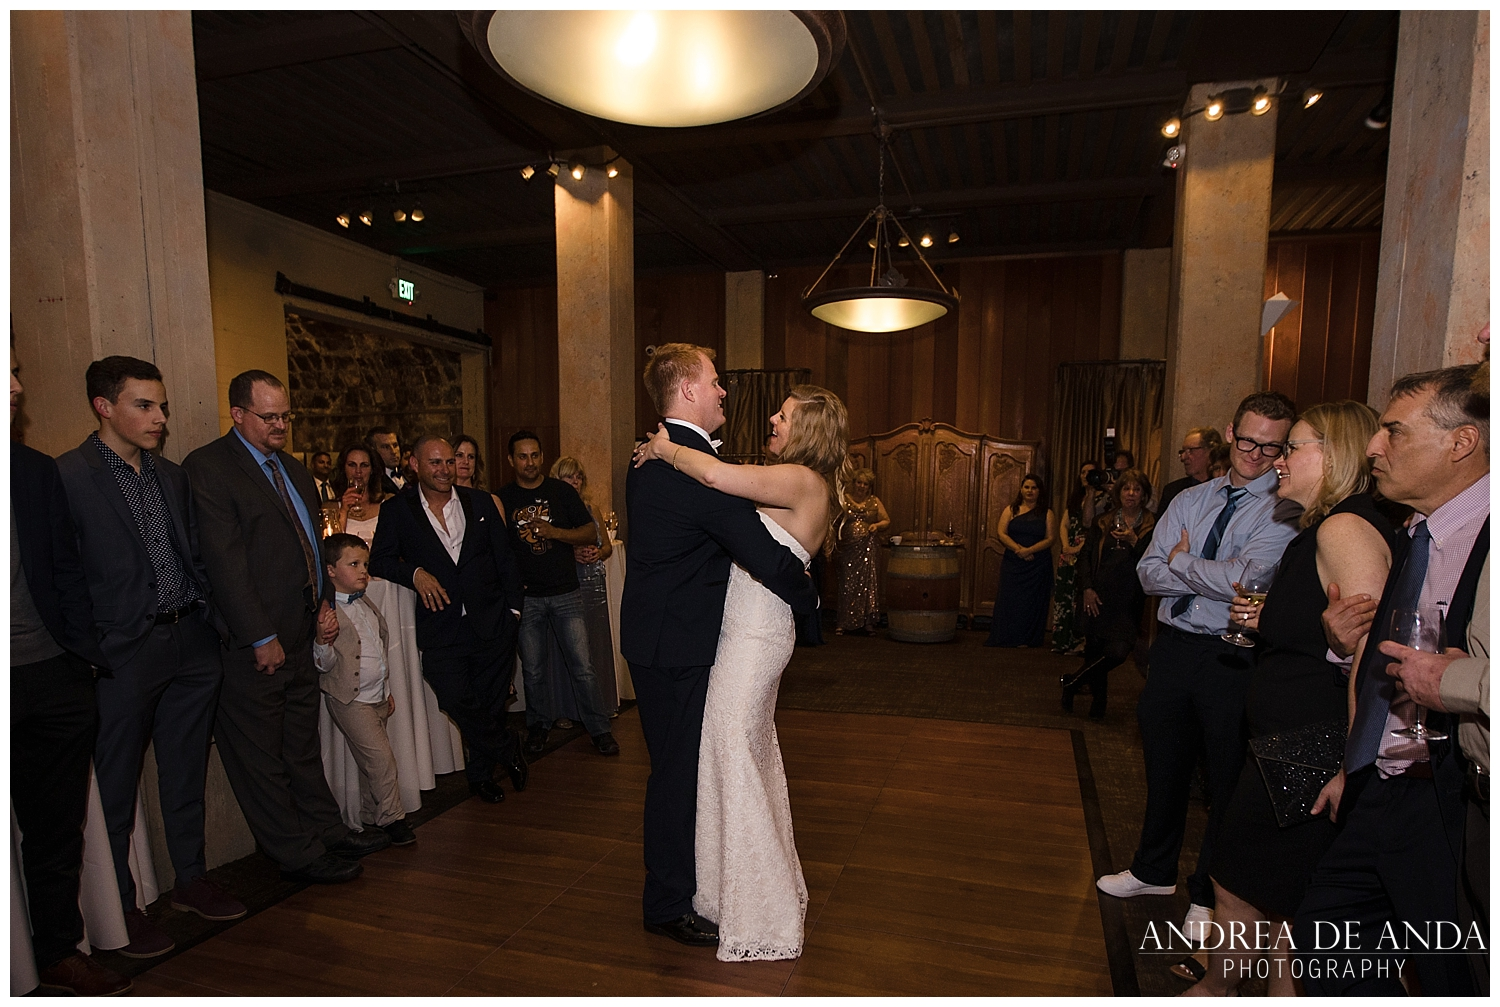 Testarossa Winery Winter Wedding by Andrea de Anda Photography_-42.jpg